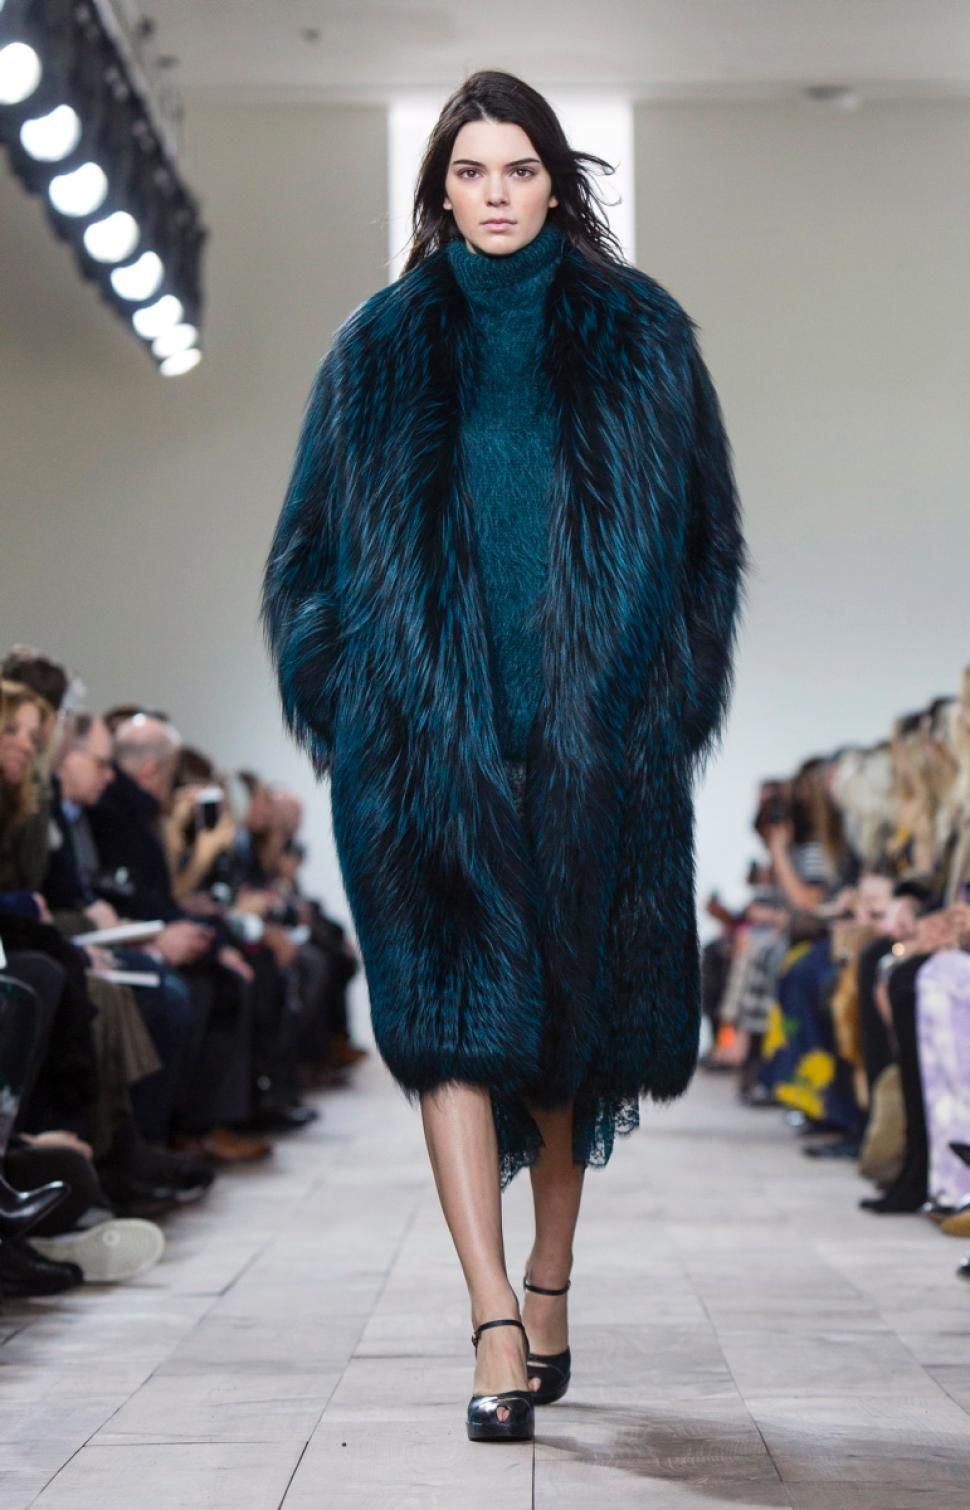 No one blinked at the marc jacobs fashion show when a model wore a - From Marc Jacobs To Vera Wang There Is Clearly No Fashion Designer That Doesn